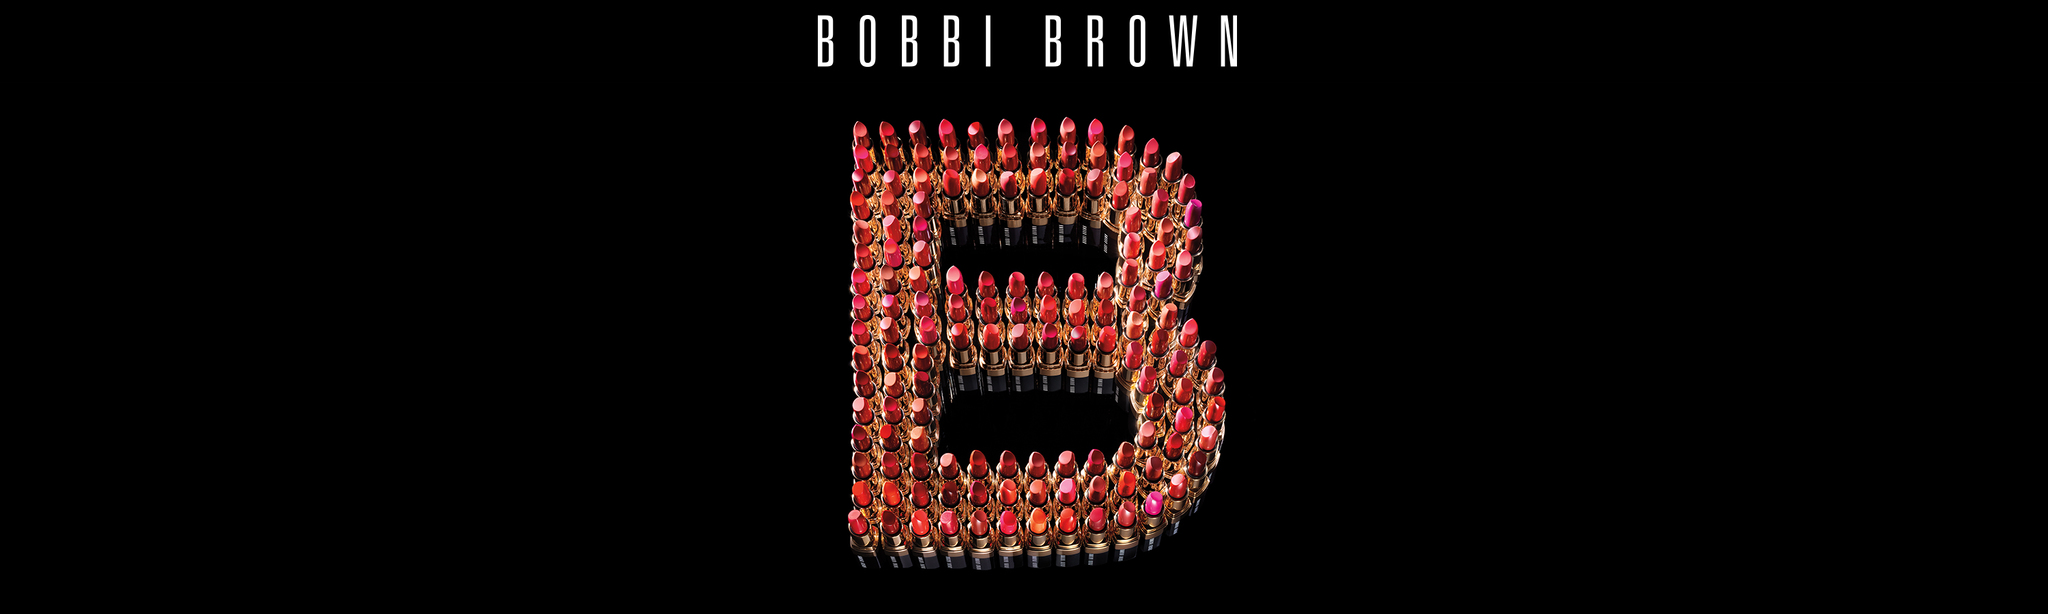 Bobbi Brown banner